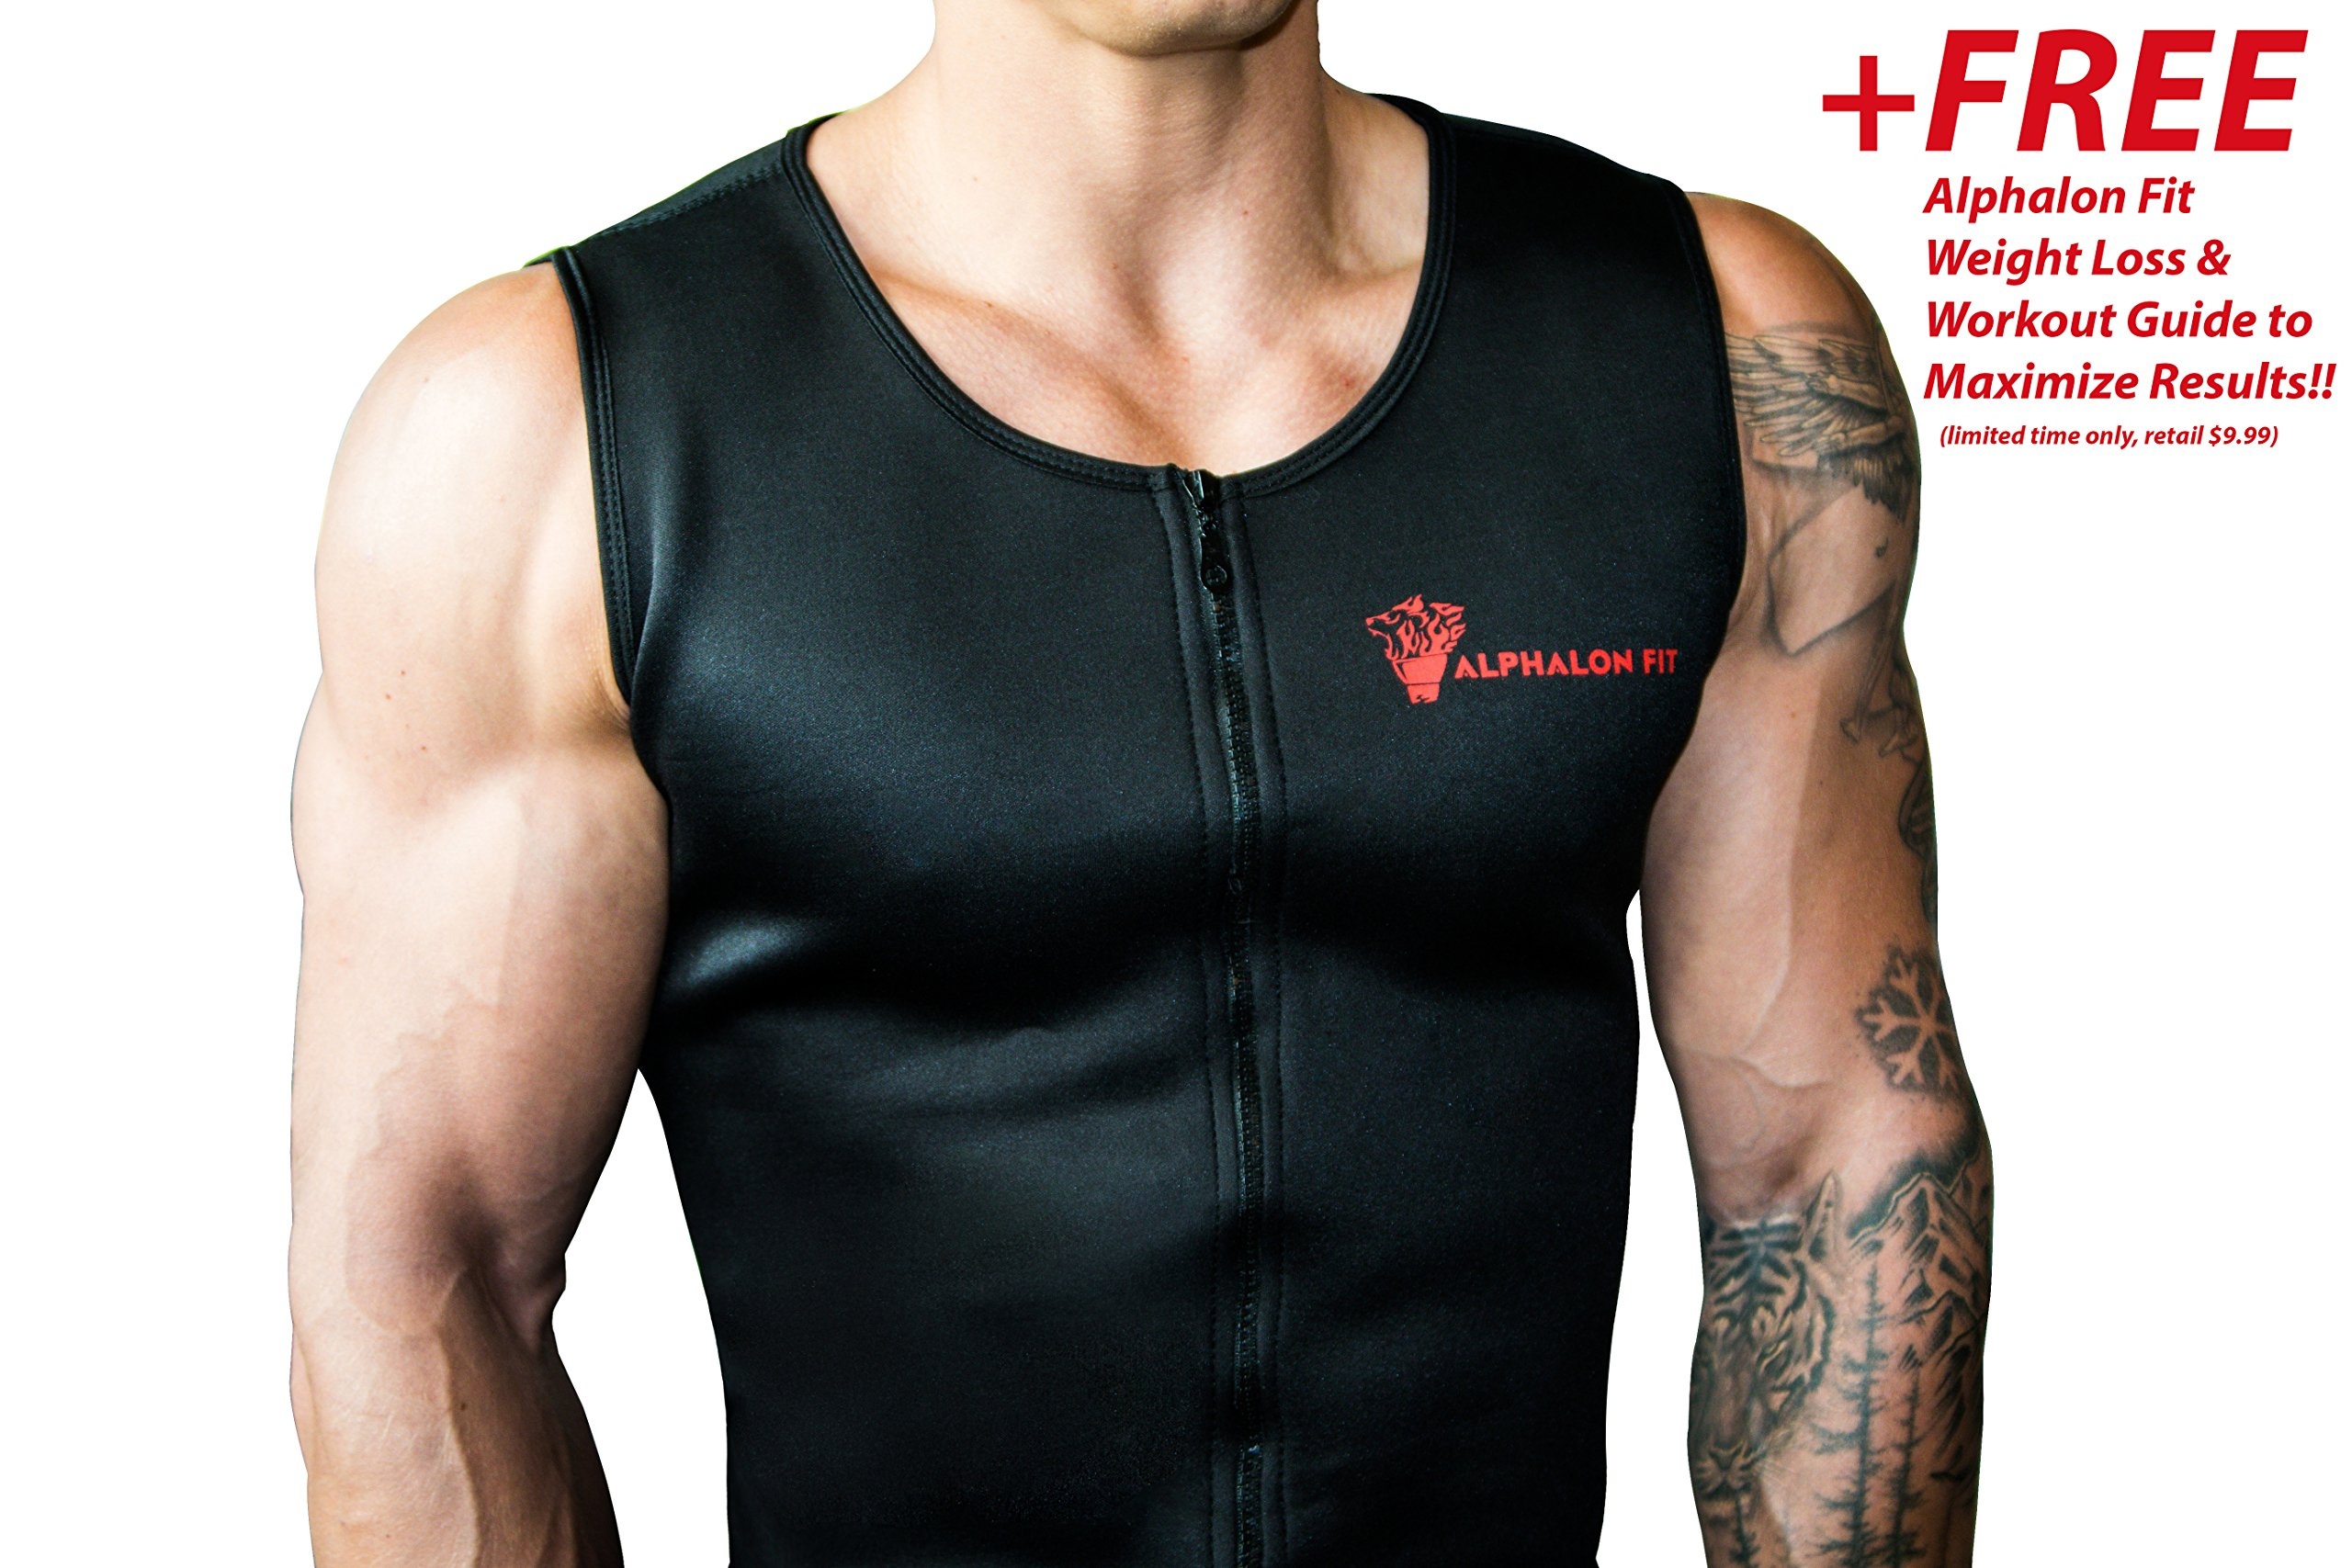 Alphalon Fit Men's Premium Waist Trainer Vest | Weight Loss, Sauna, Body Shaper, Sweat, Belt, Corset, Hot Neoprene with Zipper | Burn Extra Fat with a Free Simplified Weight Loss Guide (2X-Large)